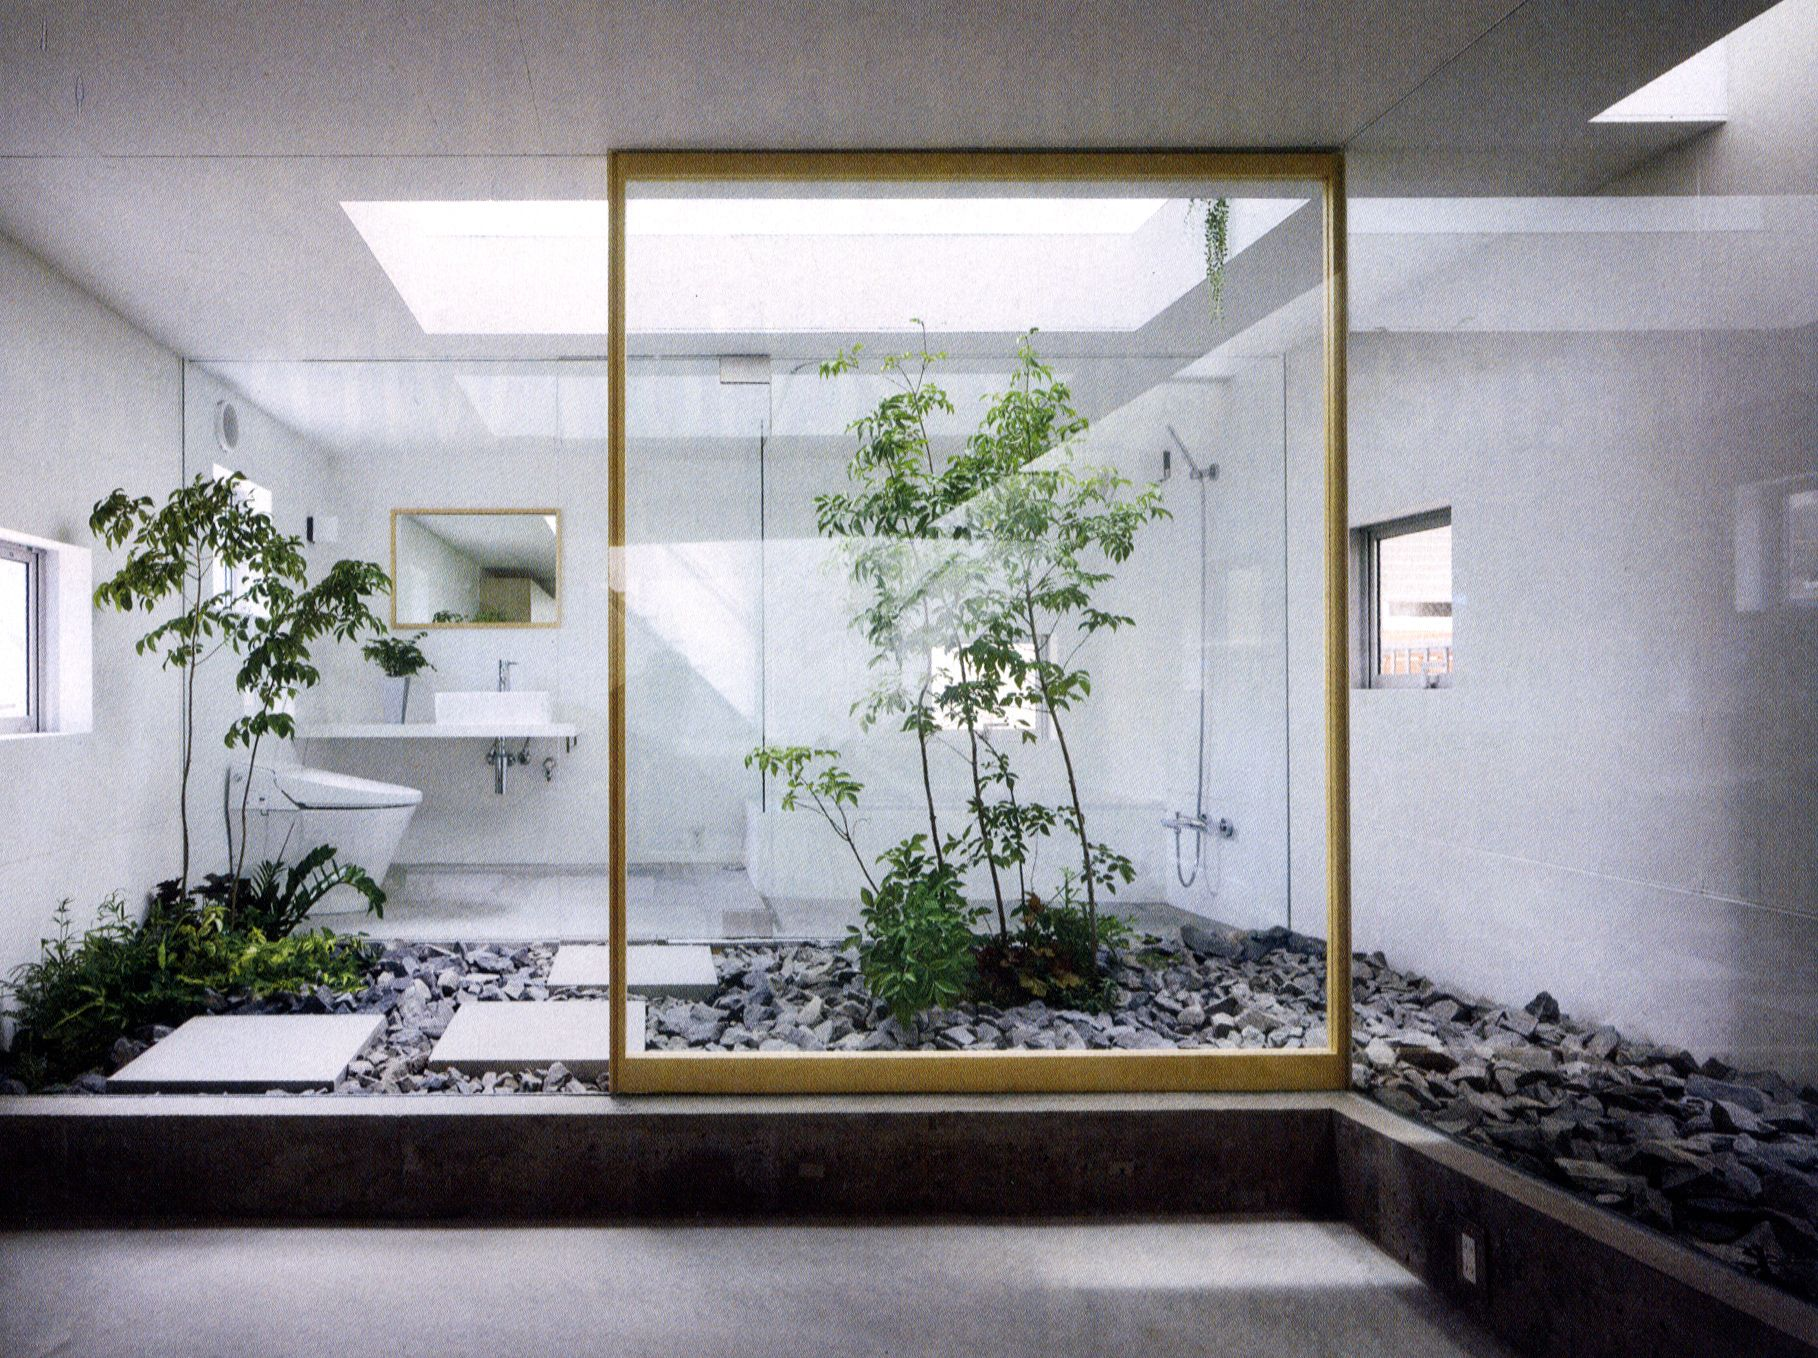 Office Zen Garden Zen Garden Bathroom For The Home Design Pinterest